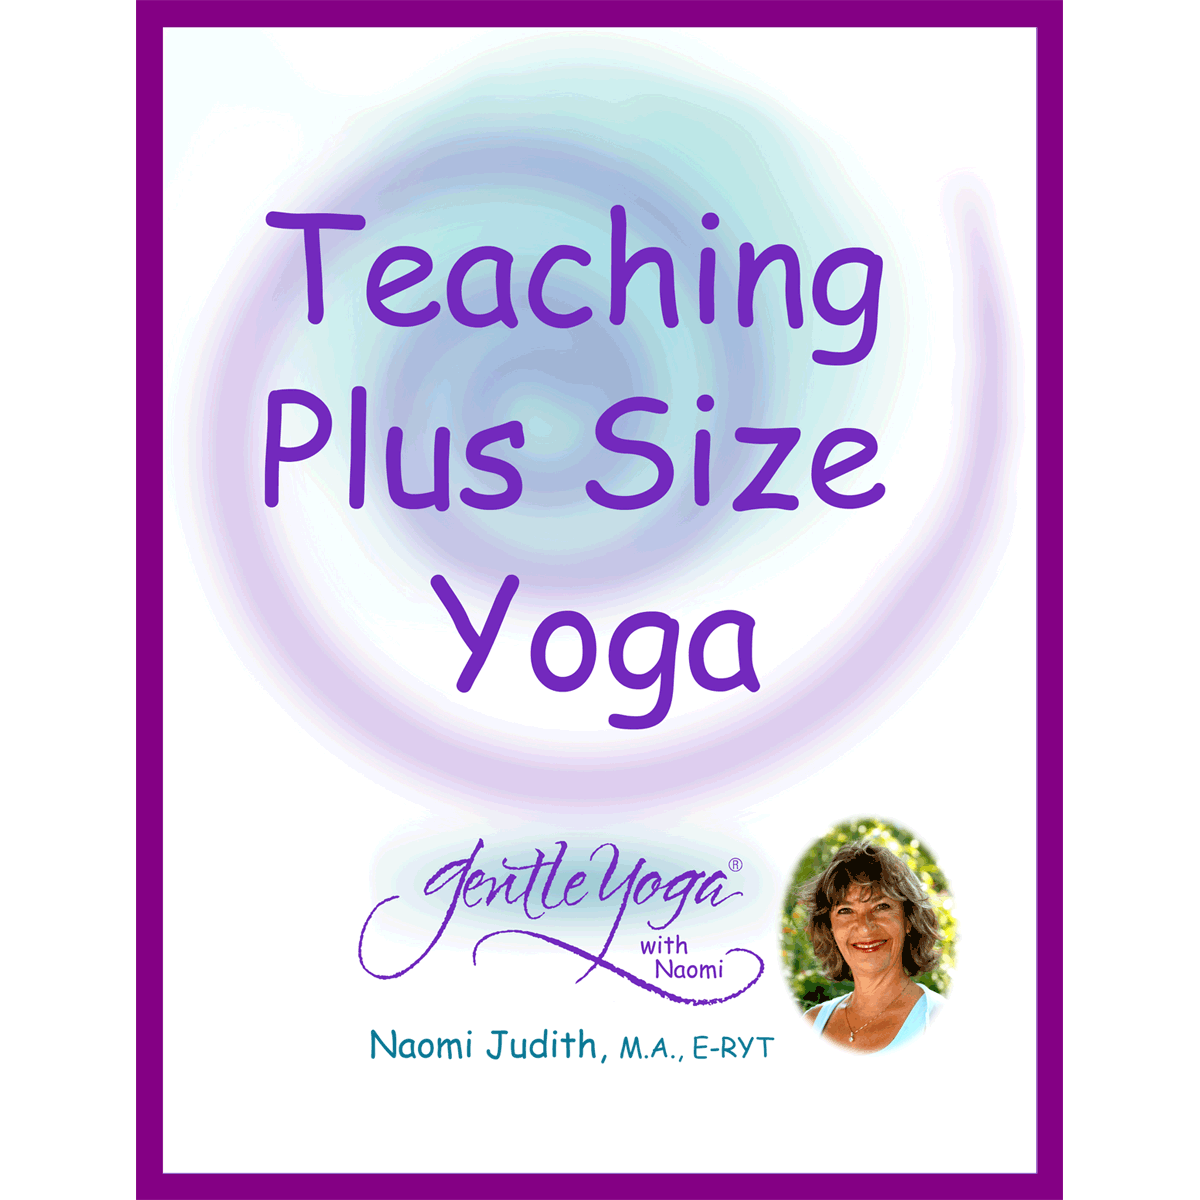 Gentle Yoga with Naomi Teaching Plus Size Yoga